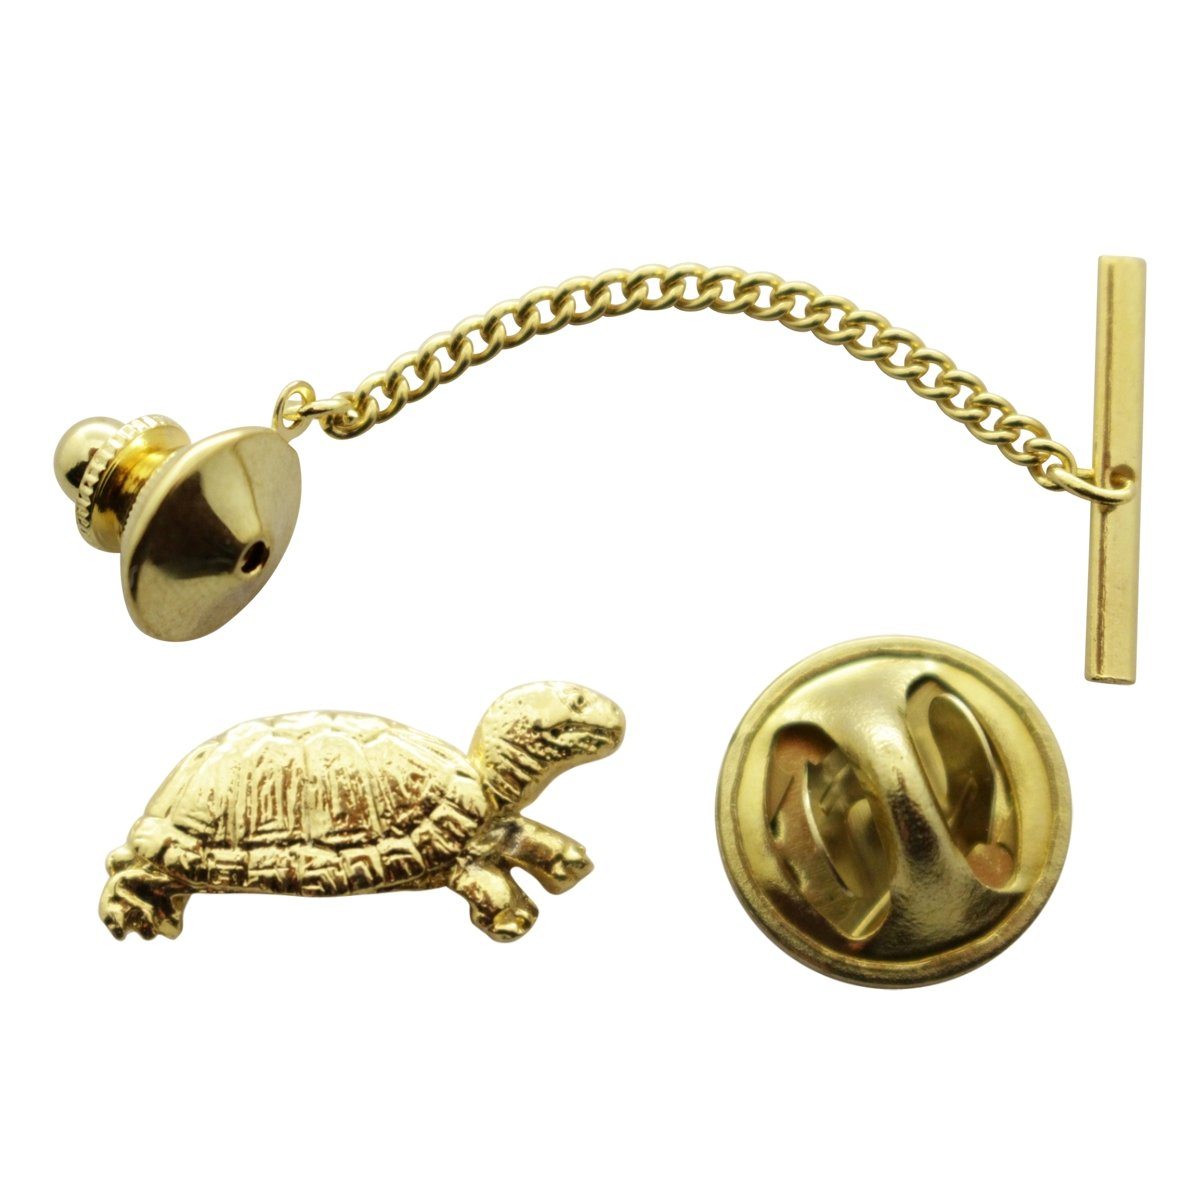 Box Turtle Tie Tack ~ 24K Gold ~ Tie Tack or Pin ~ Sarah's Treats & Treasures G.G. Harris STT-M608-G-TT